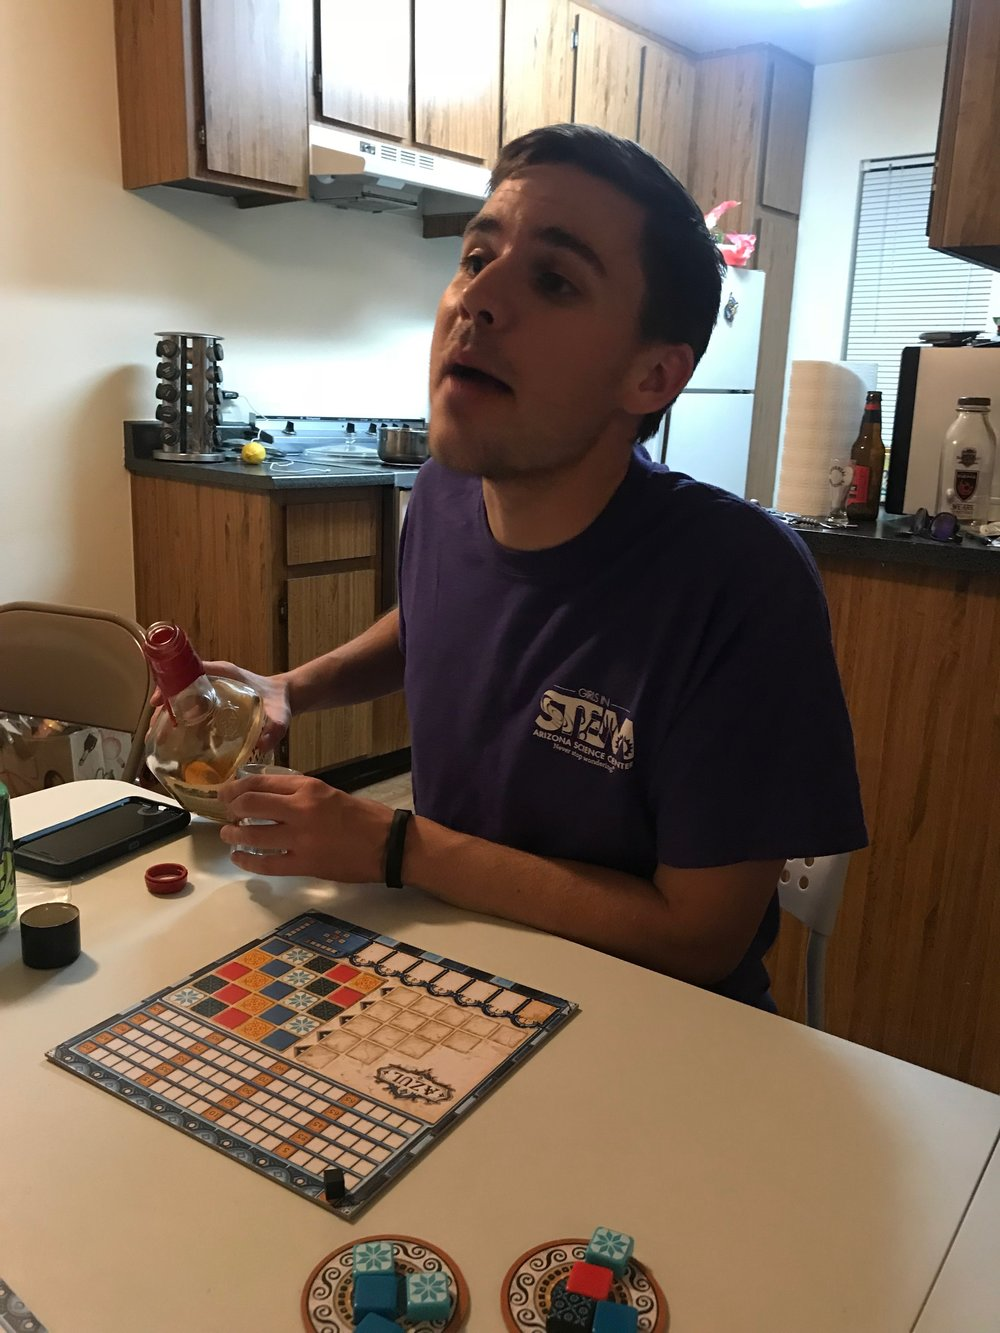 Chazzy No No  joins the team as the newest junior board game editor. He brings a youthful energy to the team and an unrelenting desire to get the best possible tracks laid down despite the hour of the night.